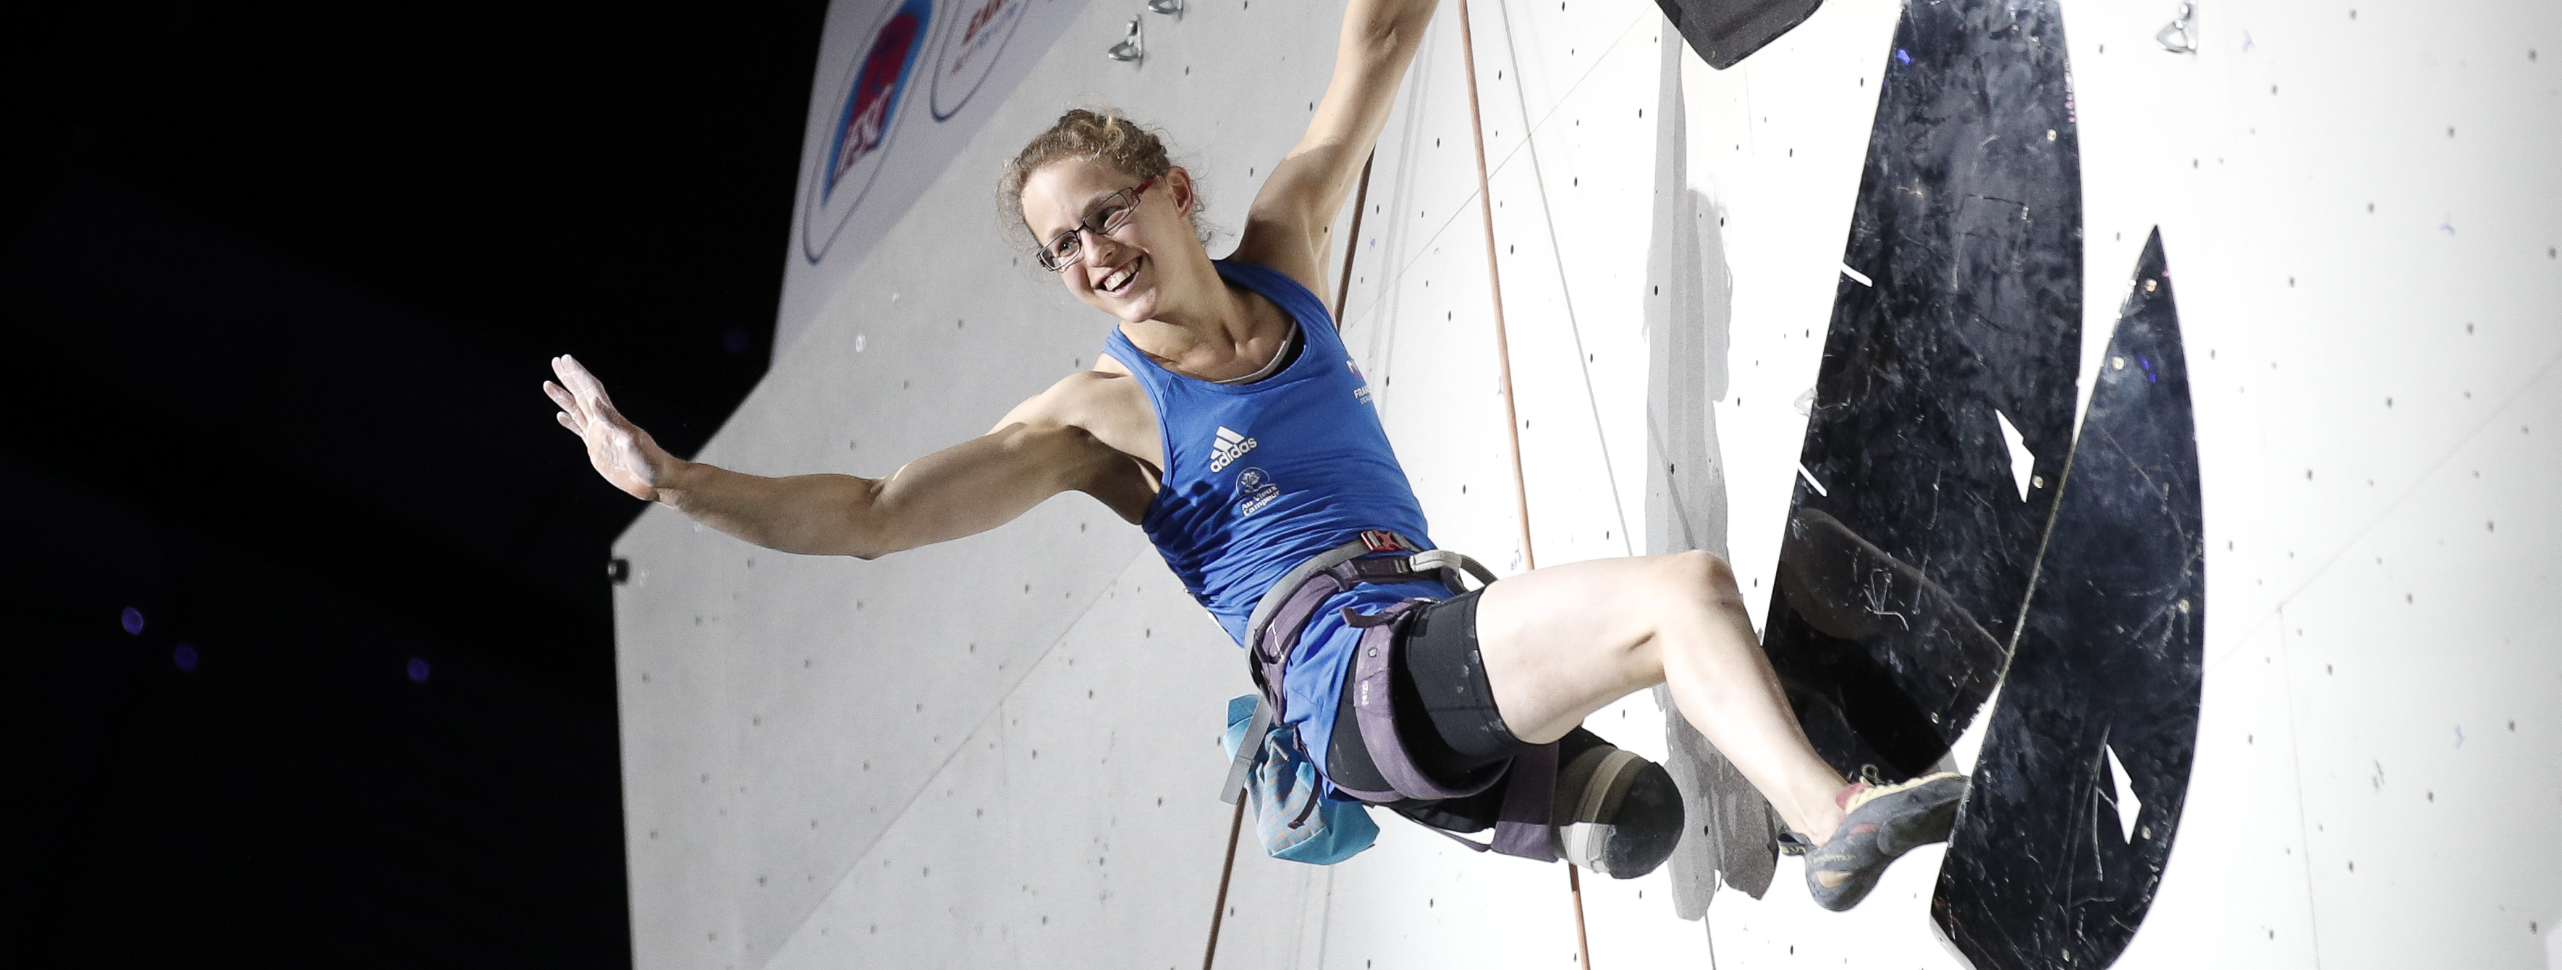 GREAT BRITAIN, BELGIUM, AND FRANCE CLAIM WOMEN'S PARACLIMBING WORLD TITLES IN MOSCOW